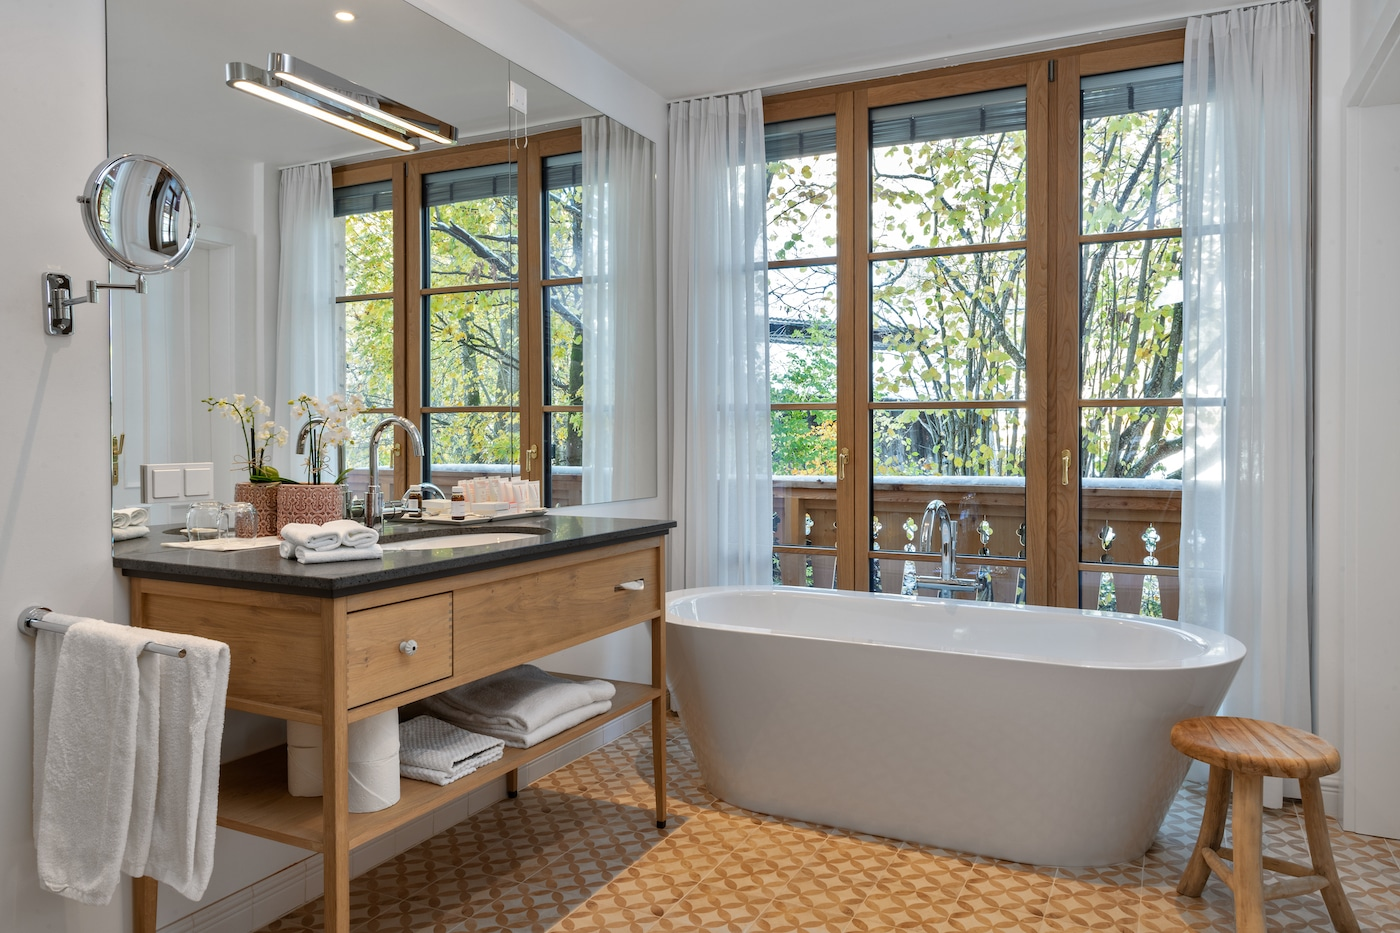 bathroom of a suite with bathtub and wooden washbasin